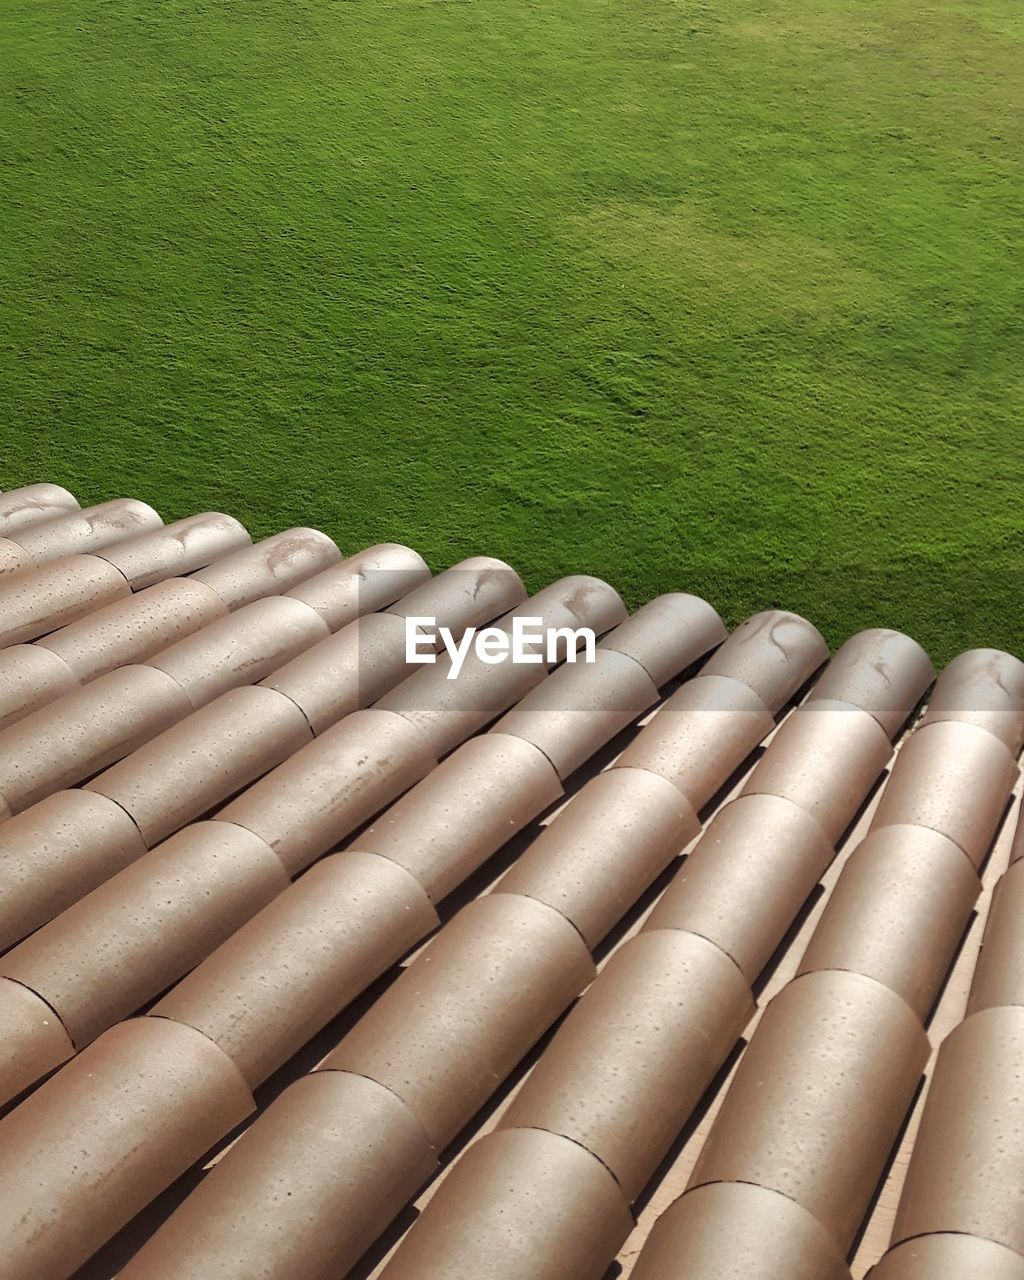 HIGH ANGLE VIEW OF PIPES